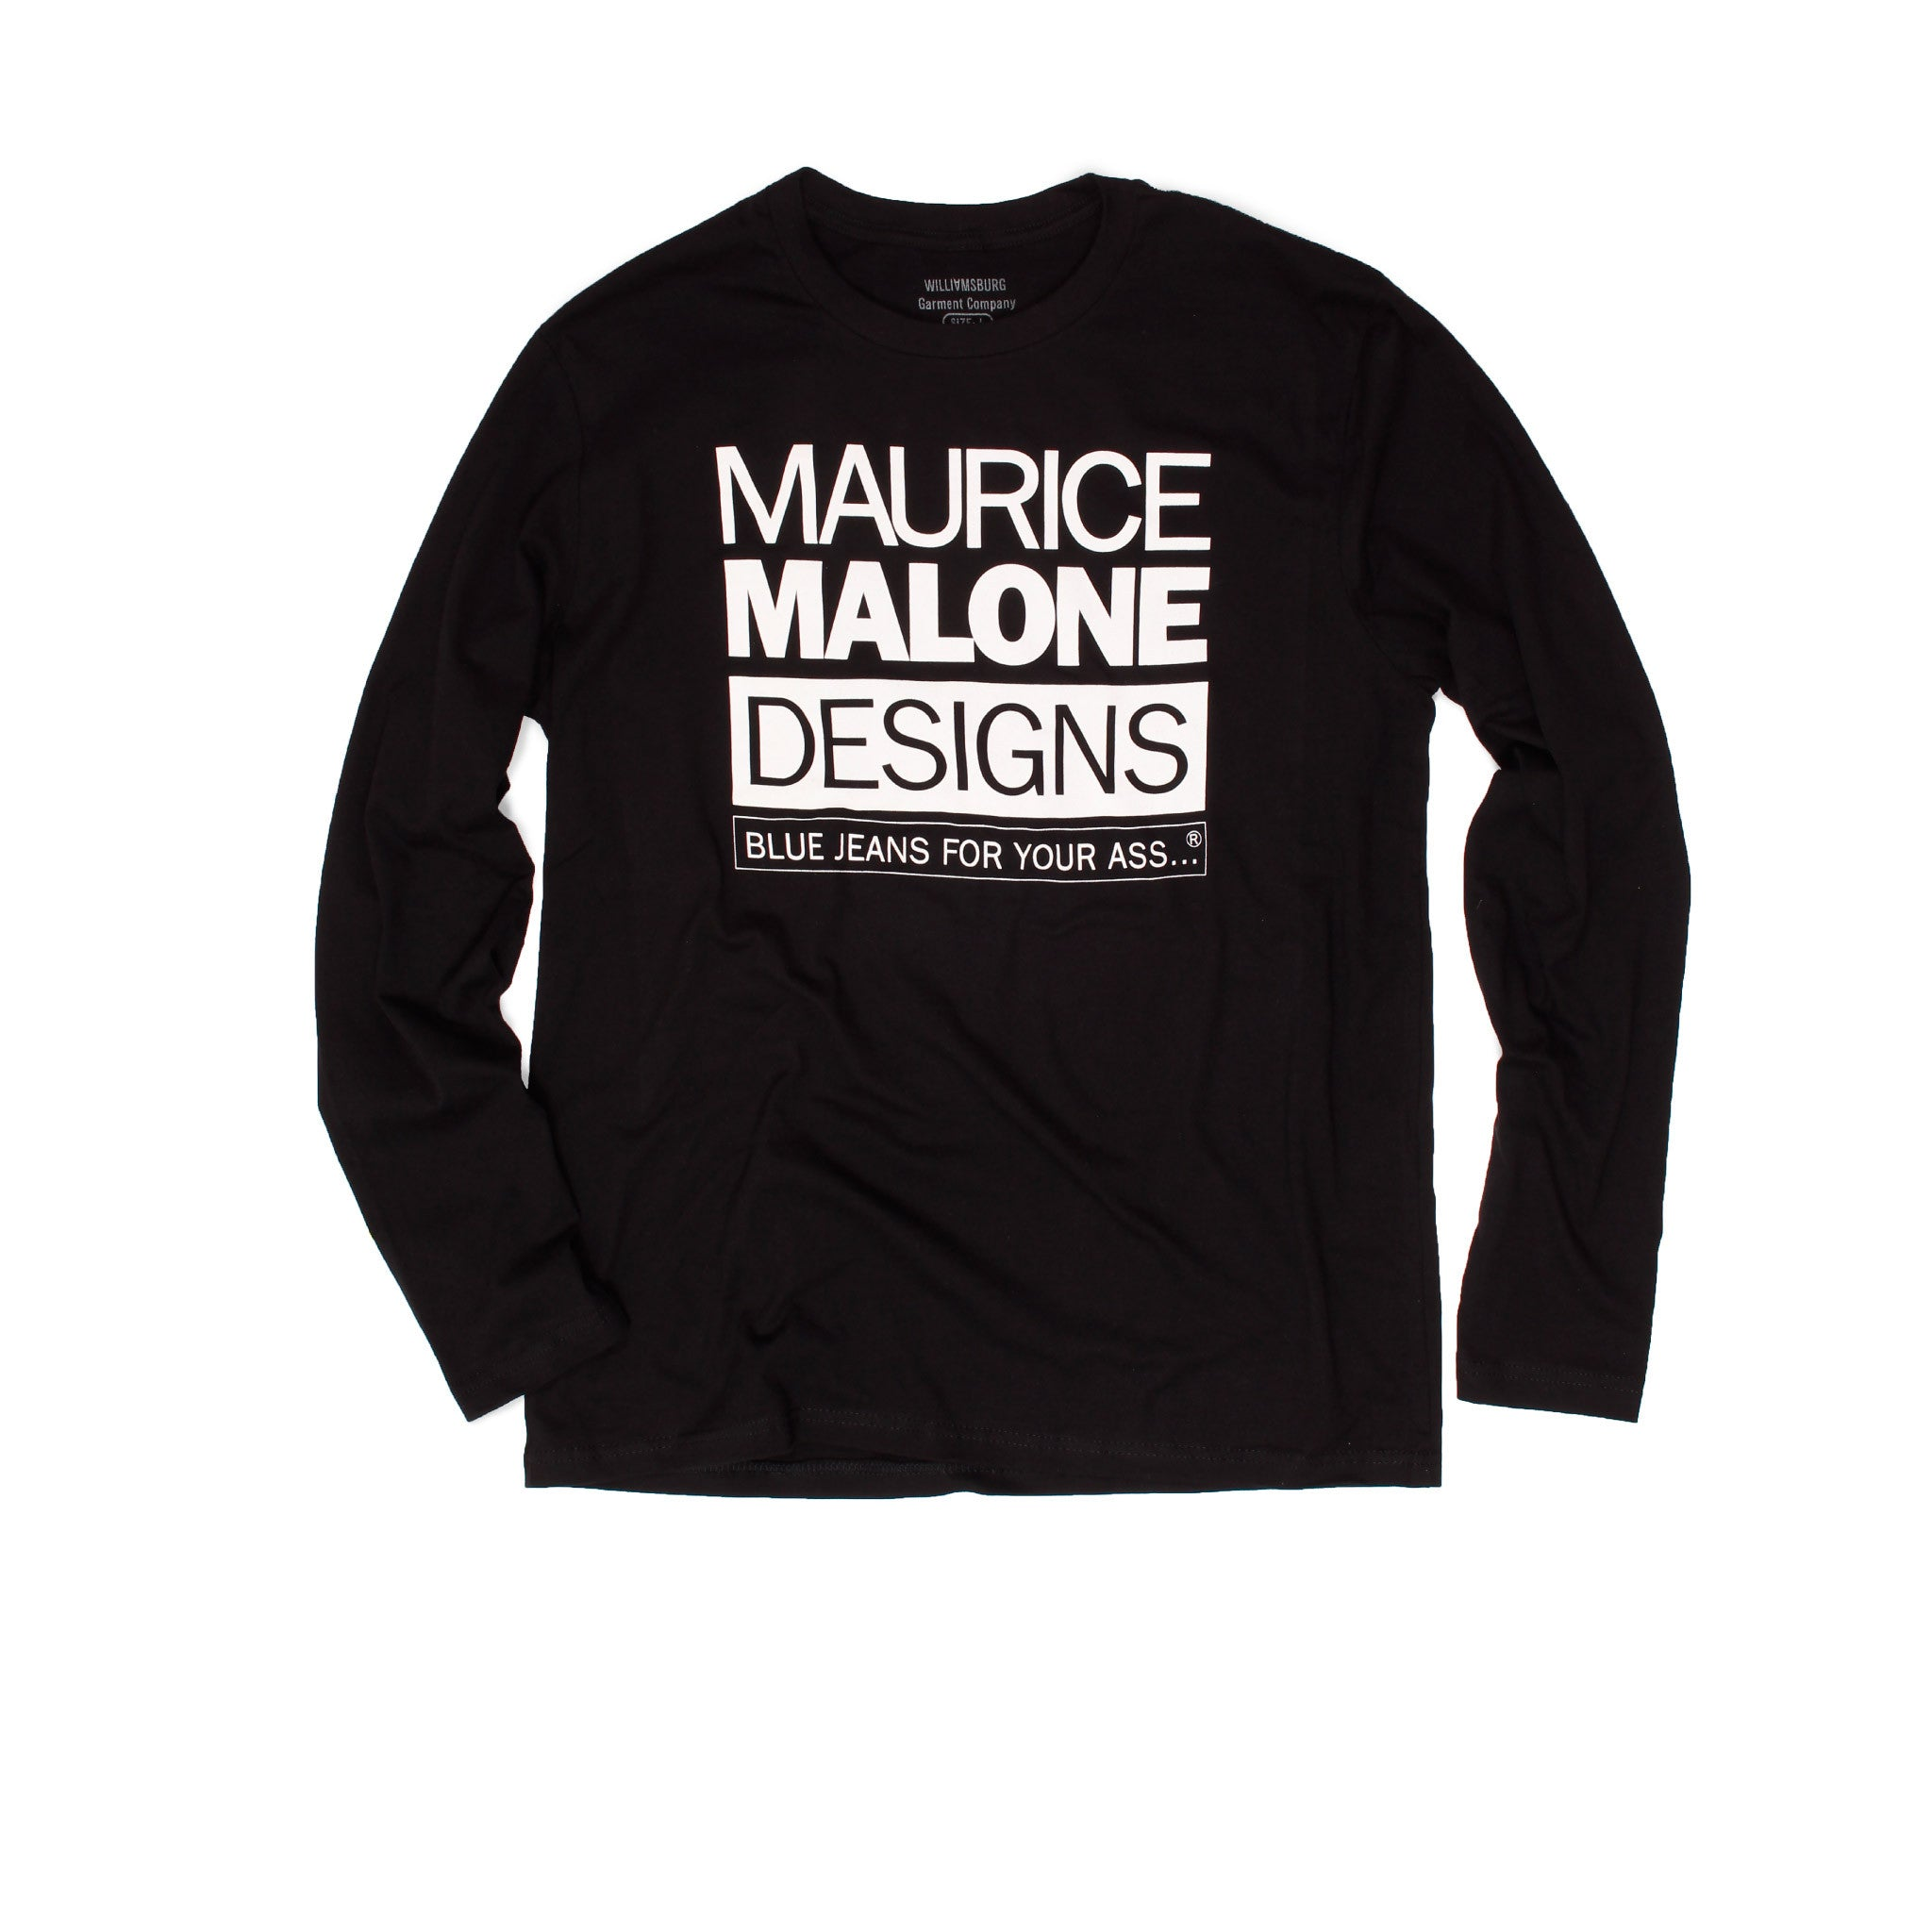 Maurice Malone long sleeve iconic black 90s designer hip-hop t-shirt